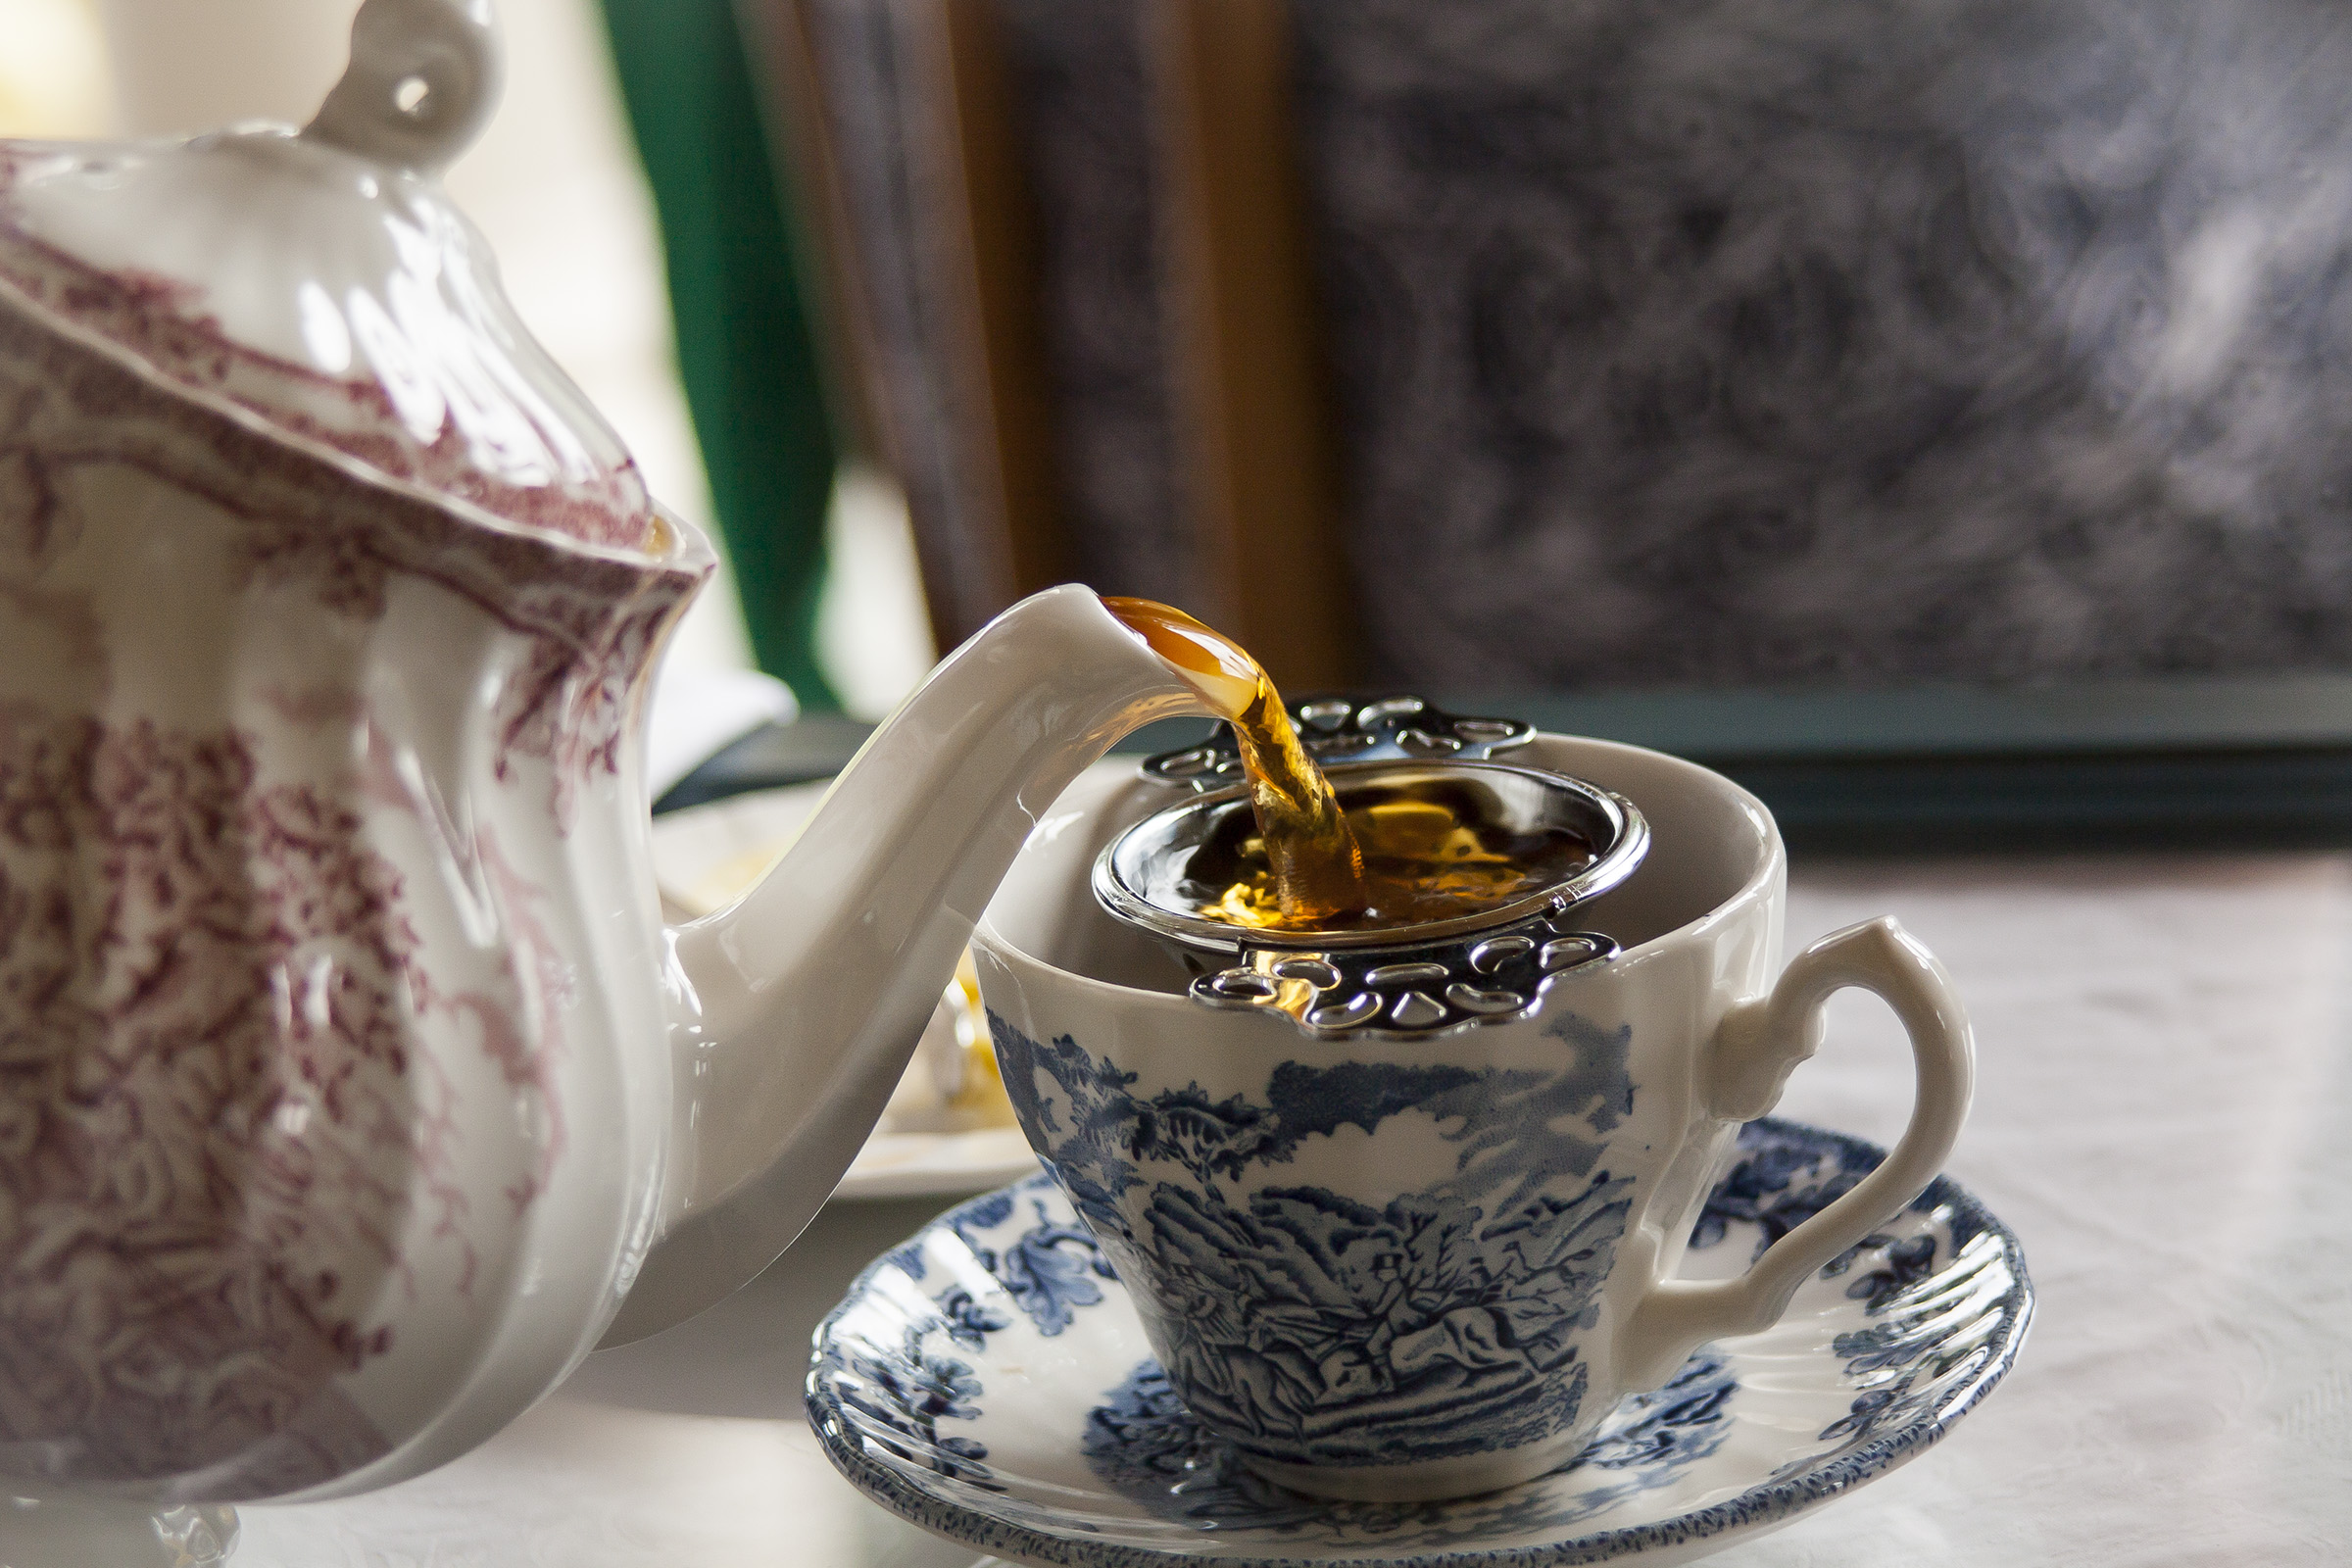 A Great Day for a Victorian Tea - The Daily Tea